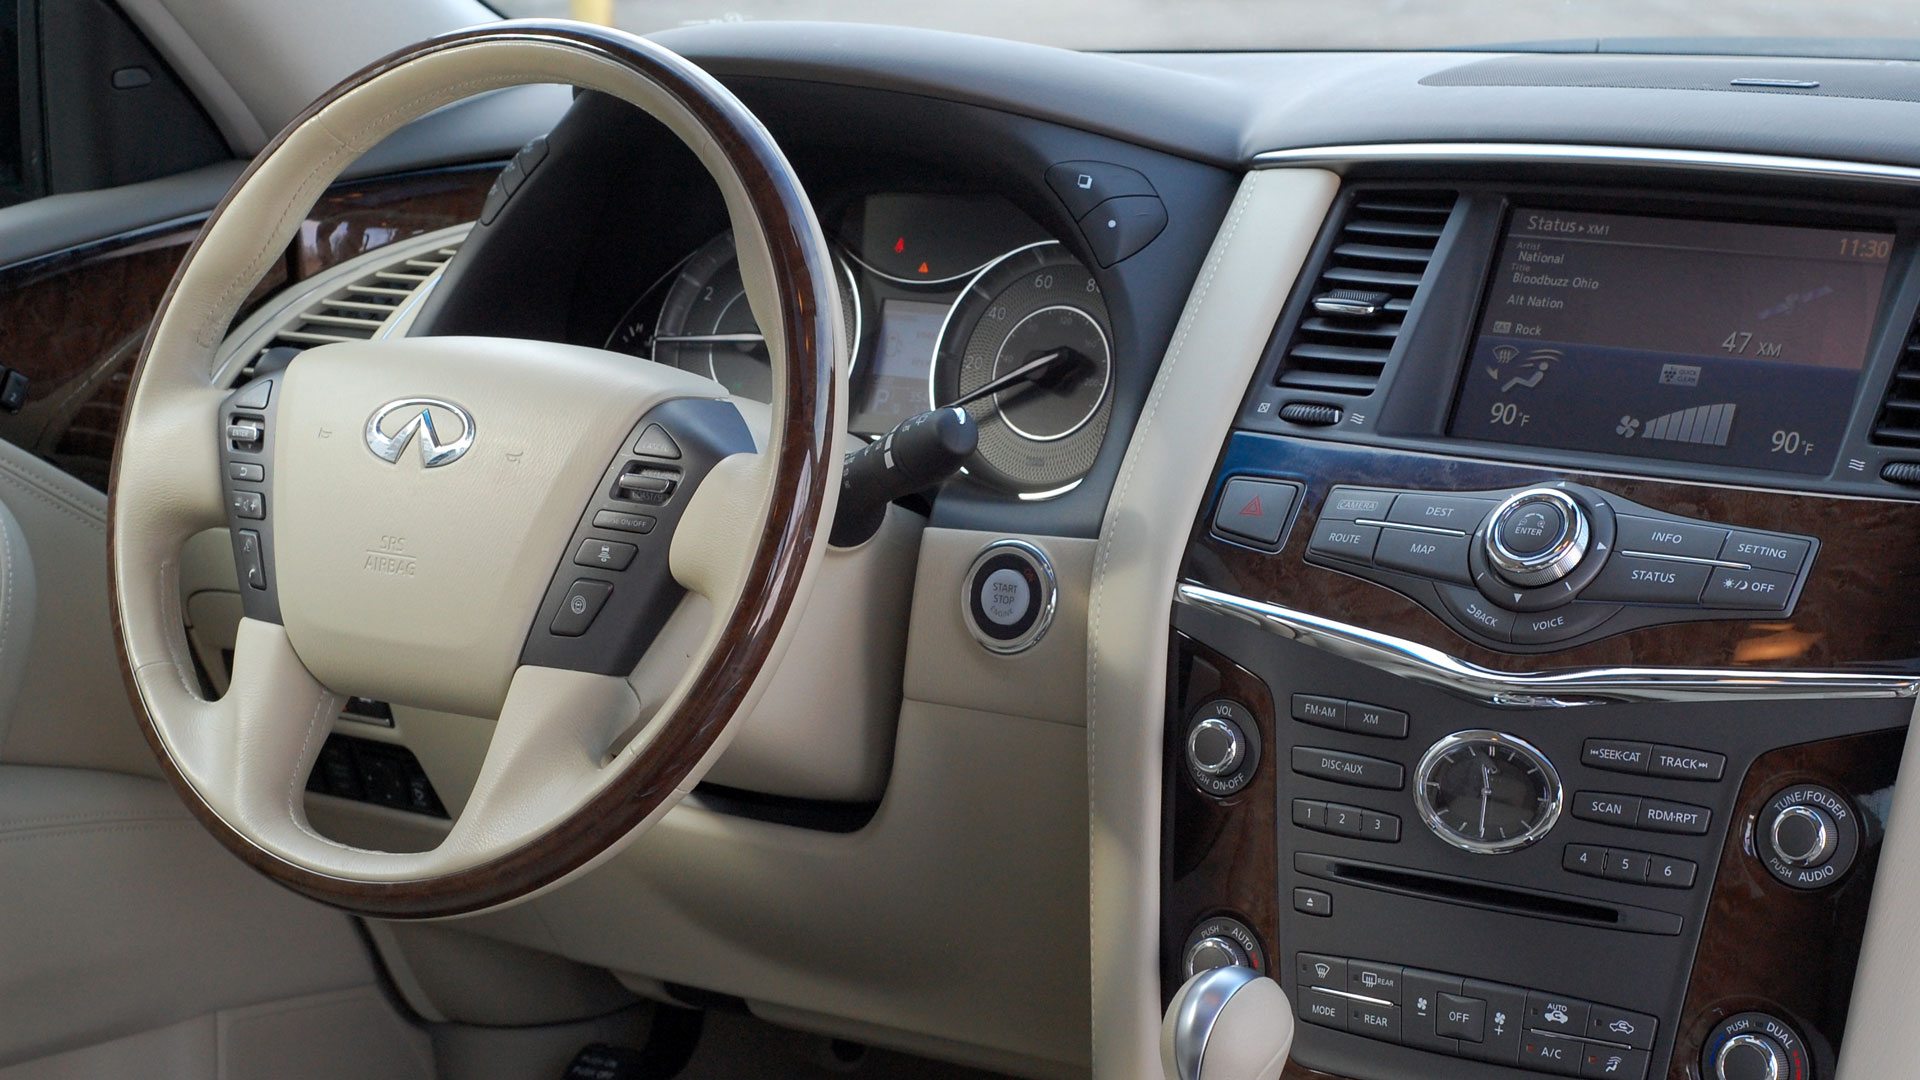 suv interior infiniti ex nikeairmaxshoesimages images infinity